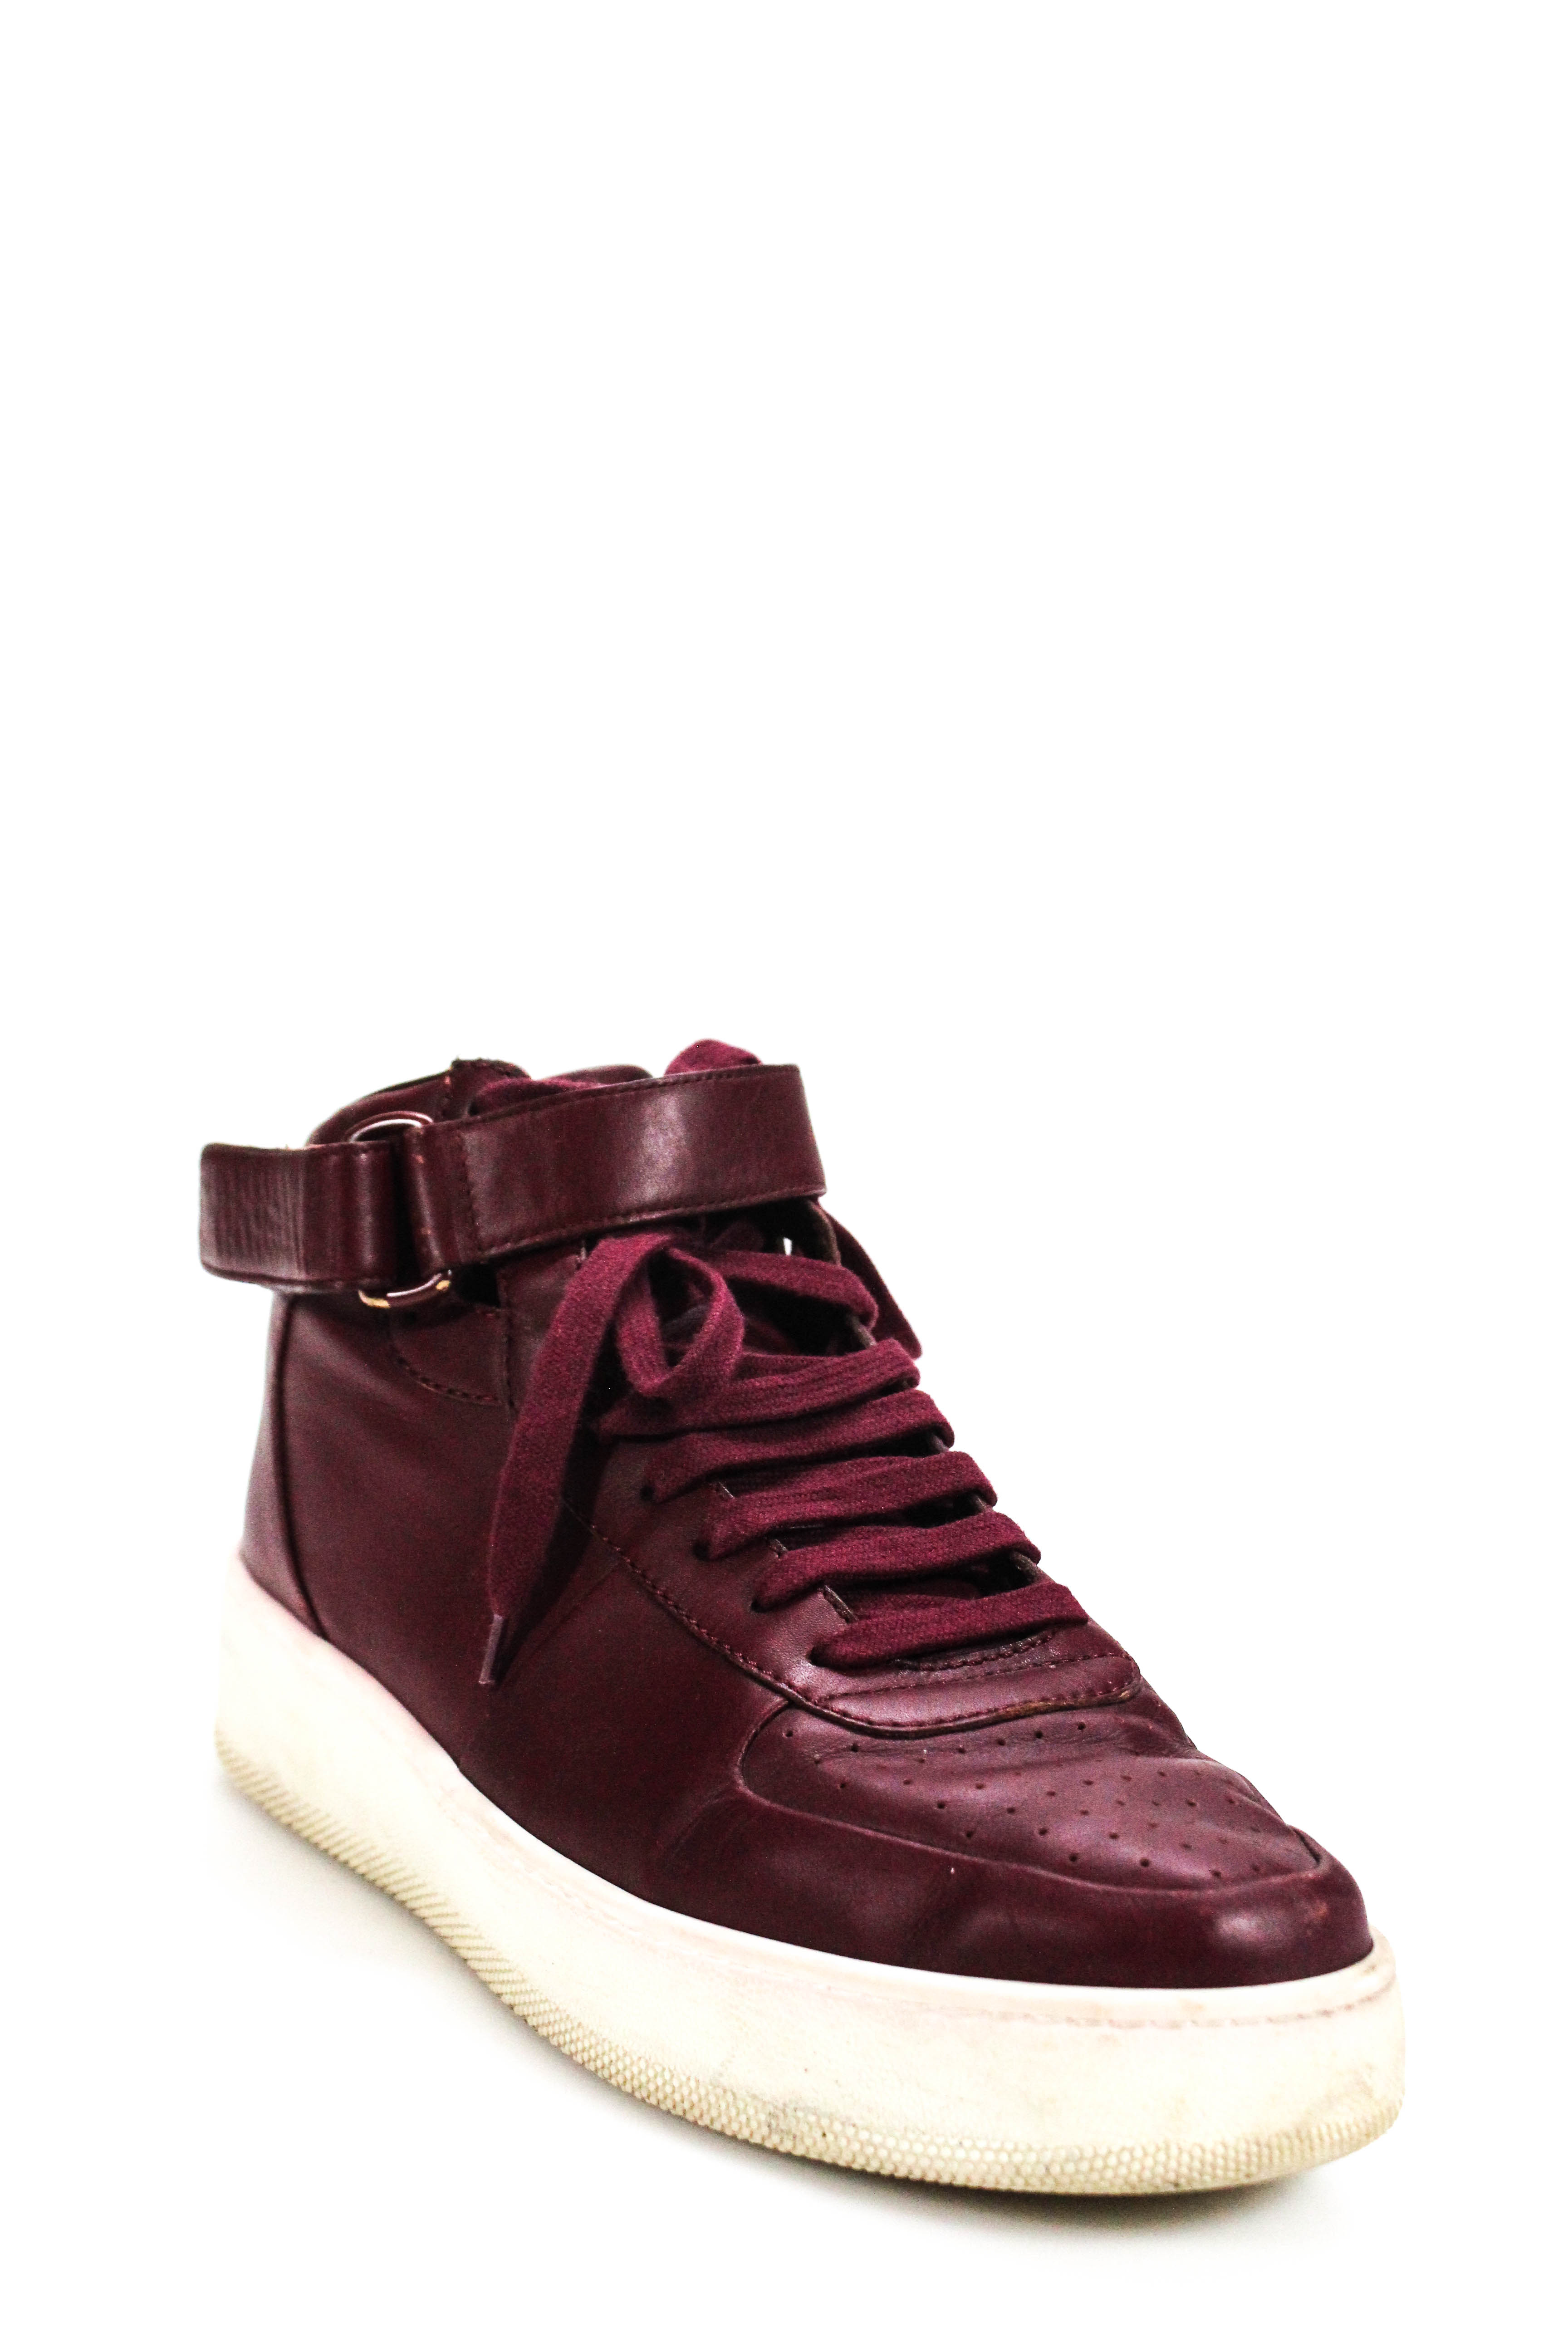 df3ab8e0b20c Celine Womens High Top Lace Up Platform Sneakers Burgundy Leather ...